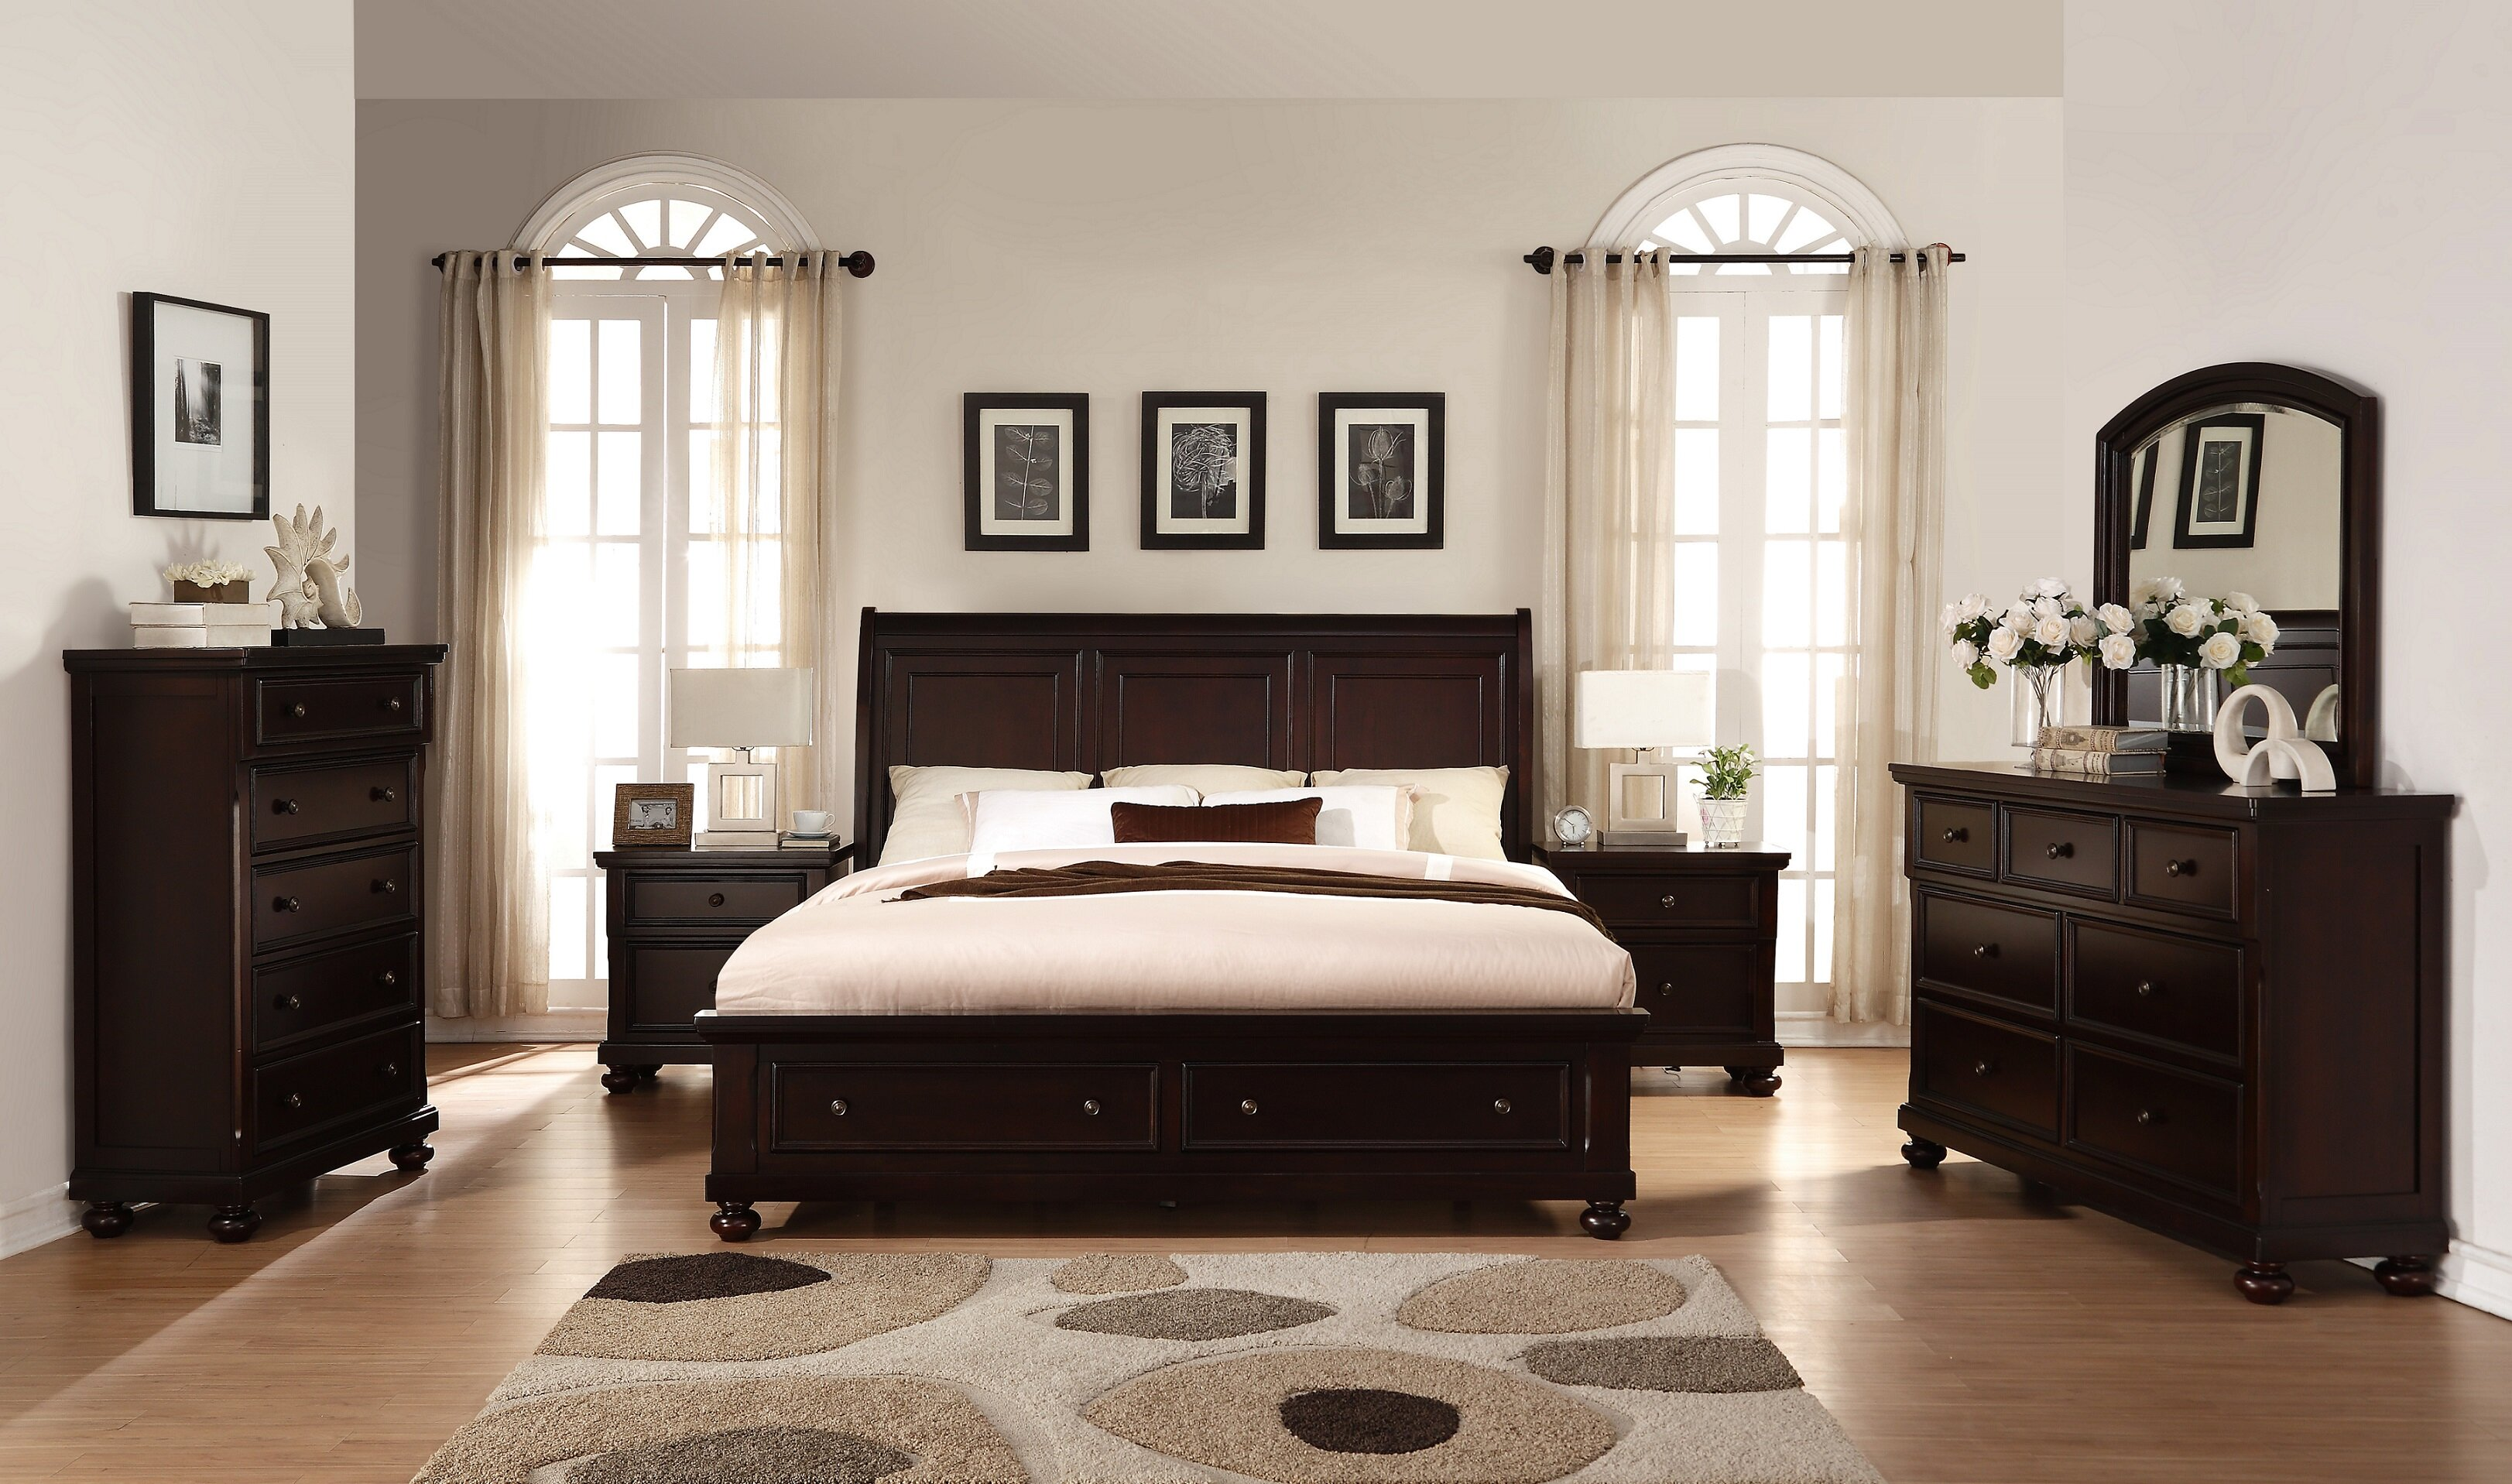 Breakwater Bay Jaimes King Platform 6 Piece Bedroom Set | Wayfair